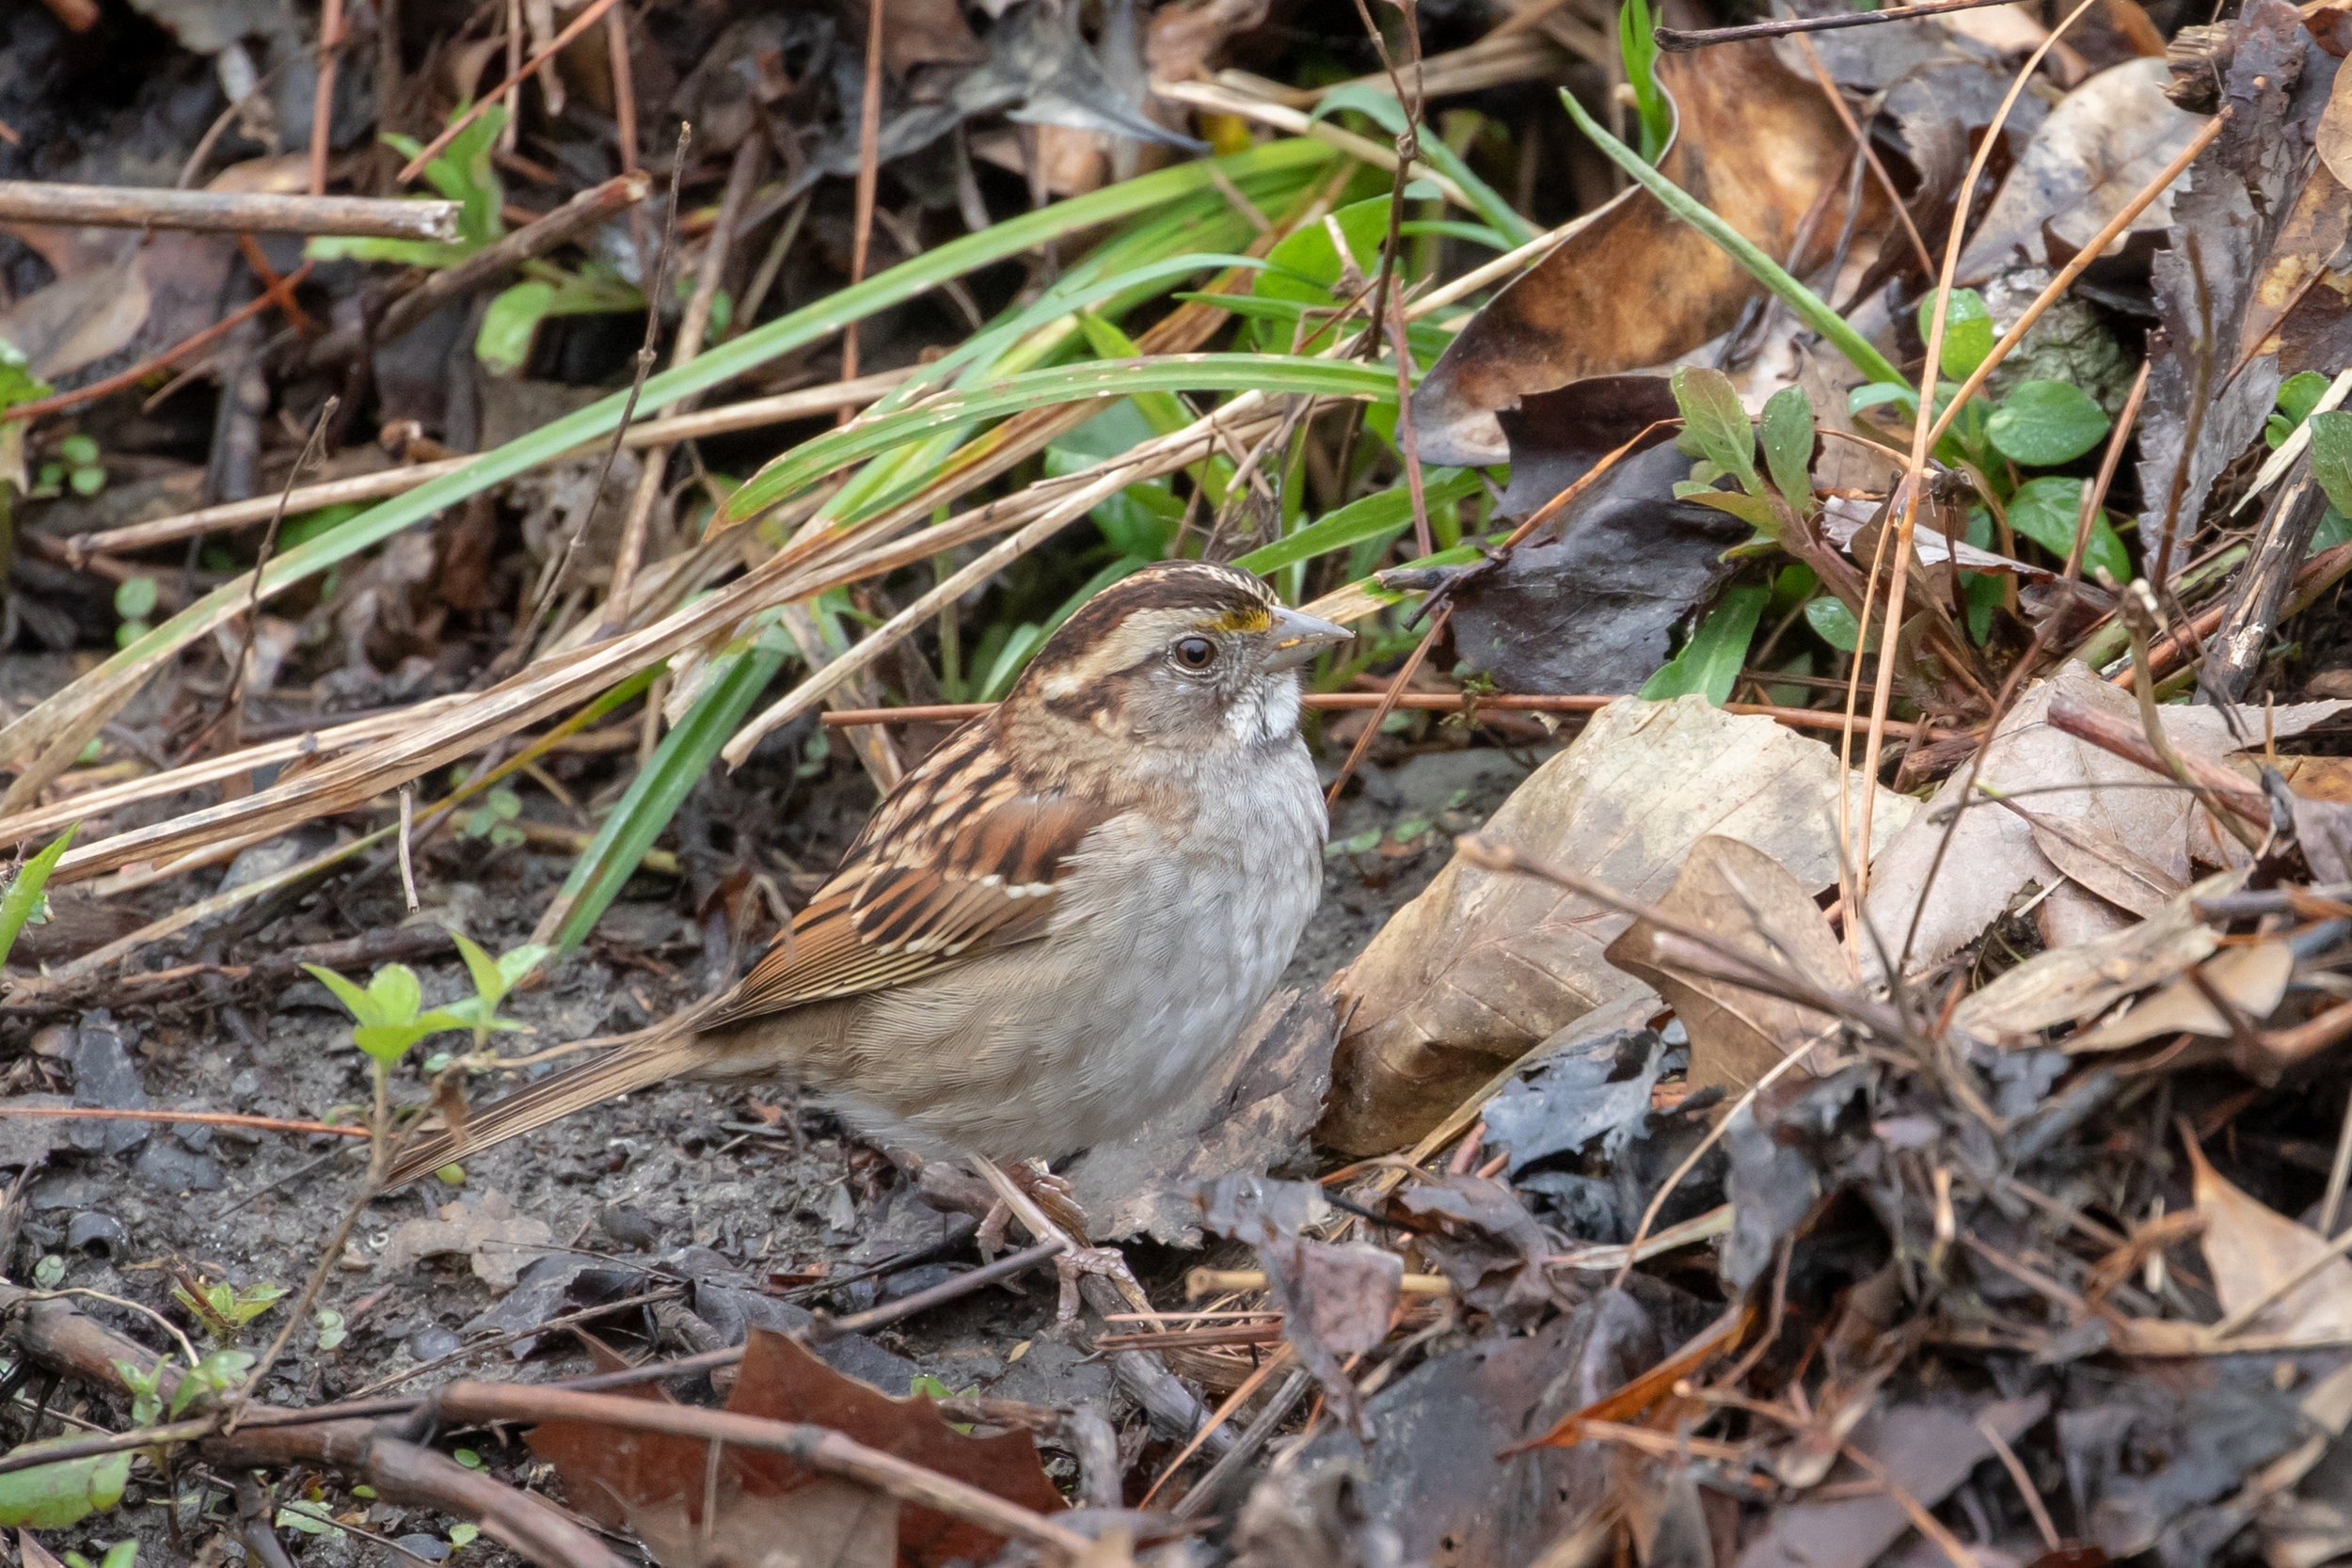 White-throated Sparrow, tan-striped